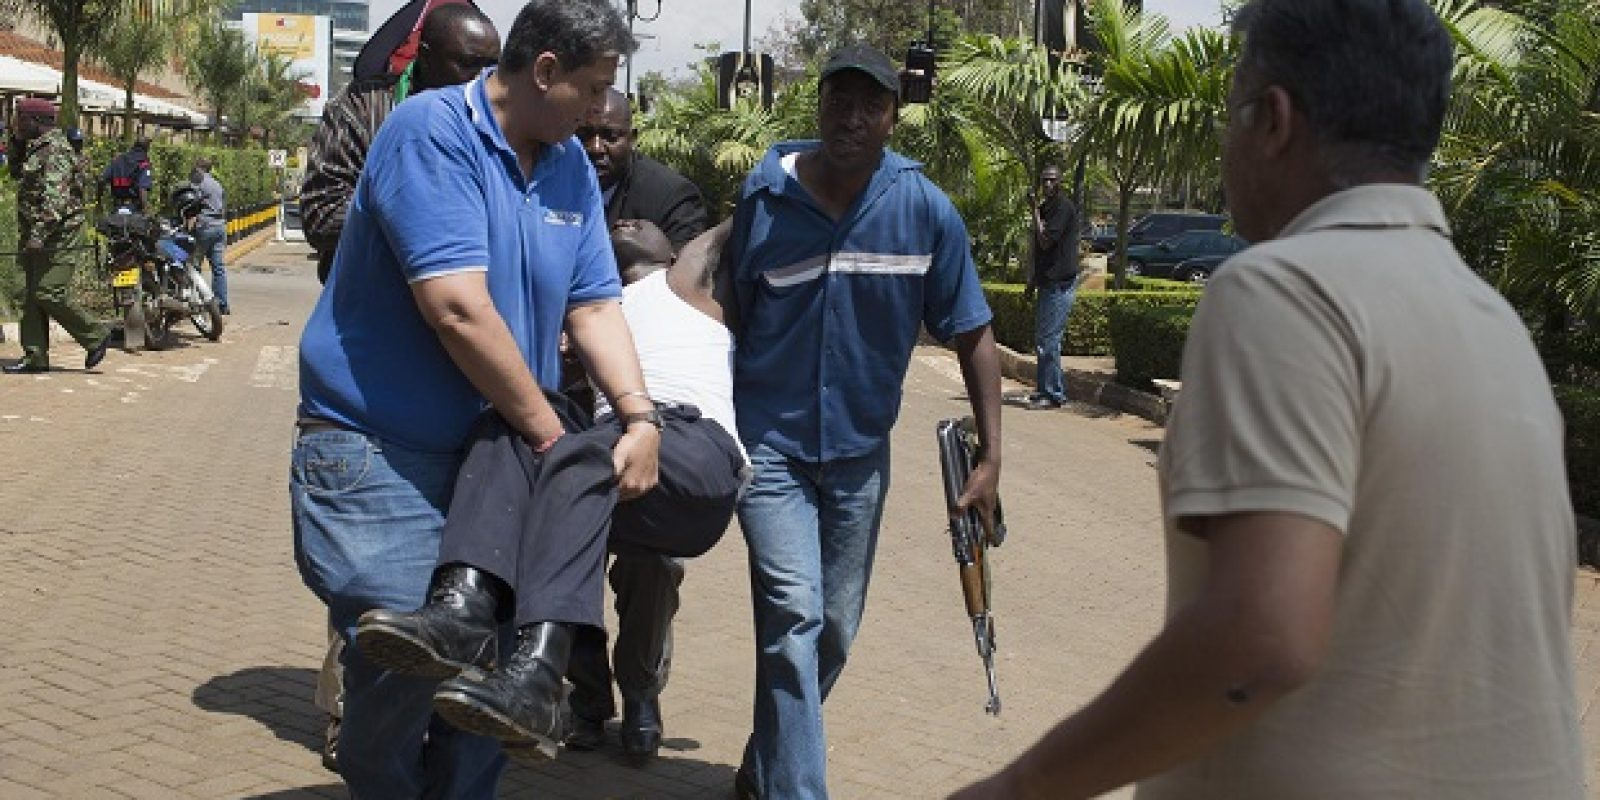 An injured man is carried out of Westgate Shopping Centre where gunmen went on a shooting spree, in Nairobi. Imagen Por: An injured man (C) is carried out of Westgate Shopping Centre where gunmen went on a shooting spree, in Nairobi September 21, 2013. The gunmen stormed the shopping mall in Nairobi on Saturday killing at least 20 people in what Kenya